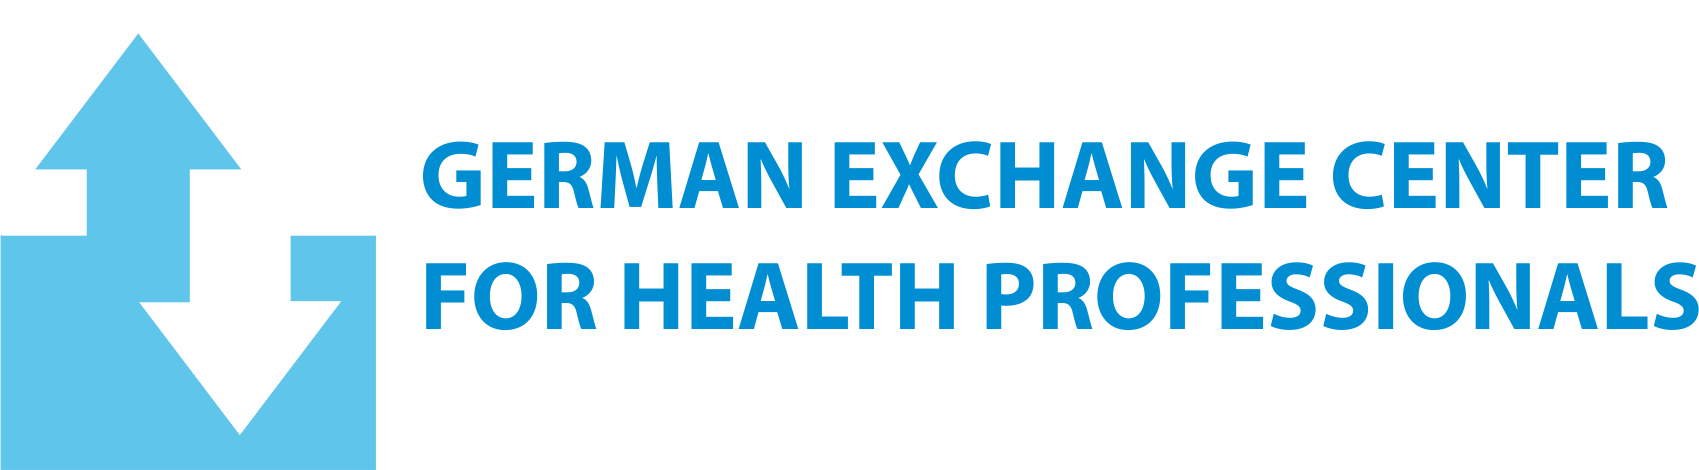 German Exchange Center for Health Professionals